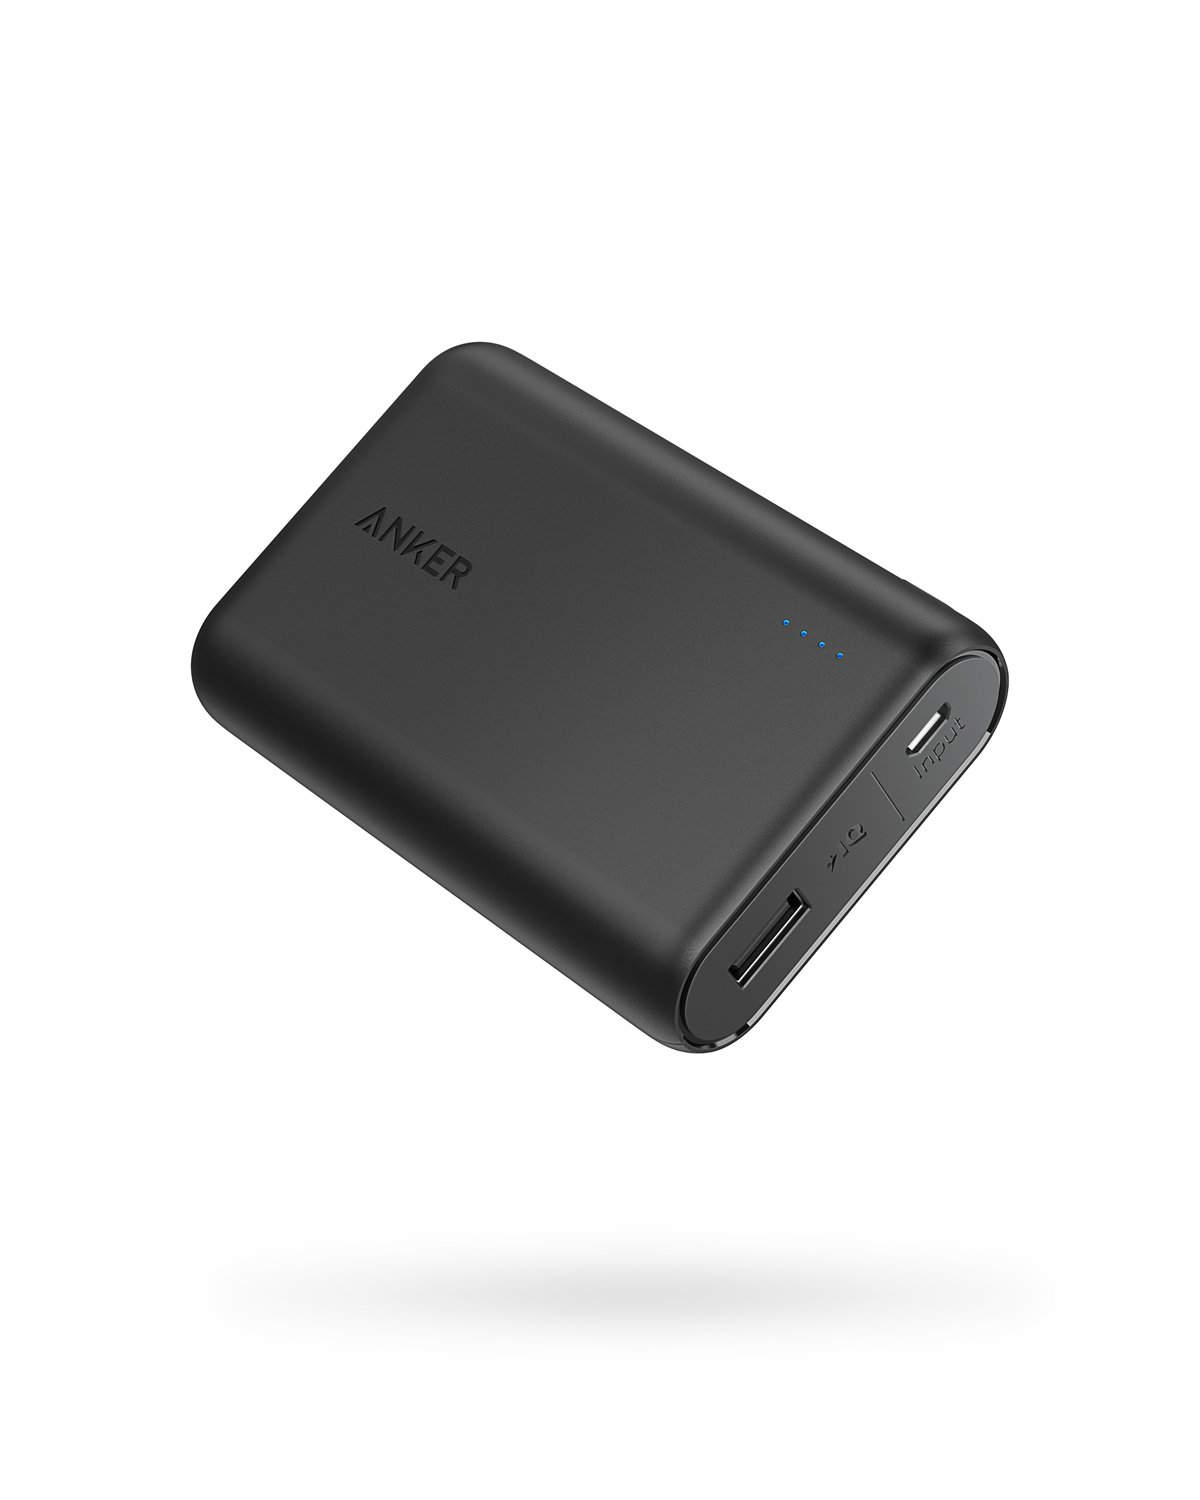 Anker PowerCore 10000 Portable Battery